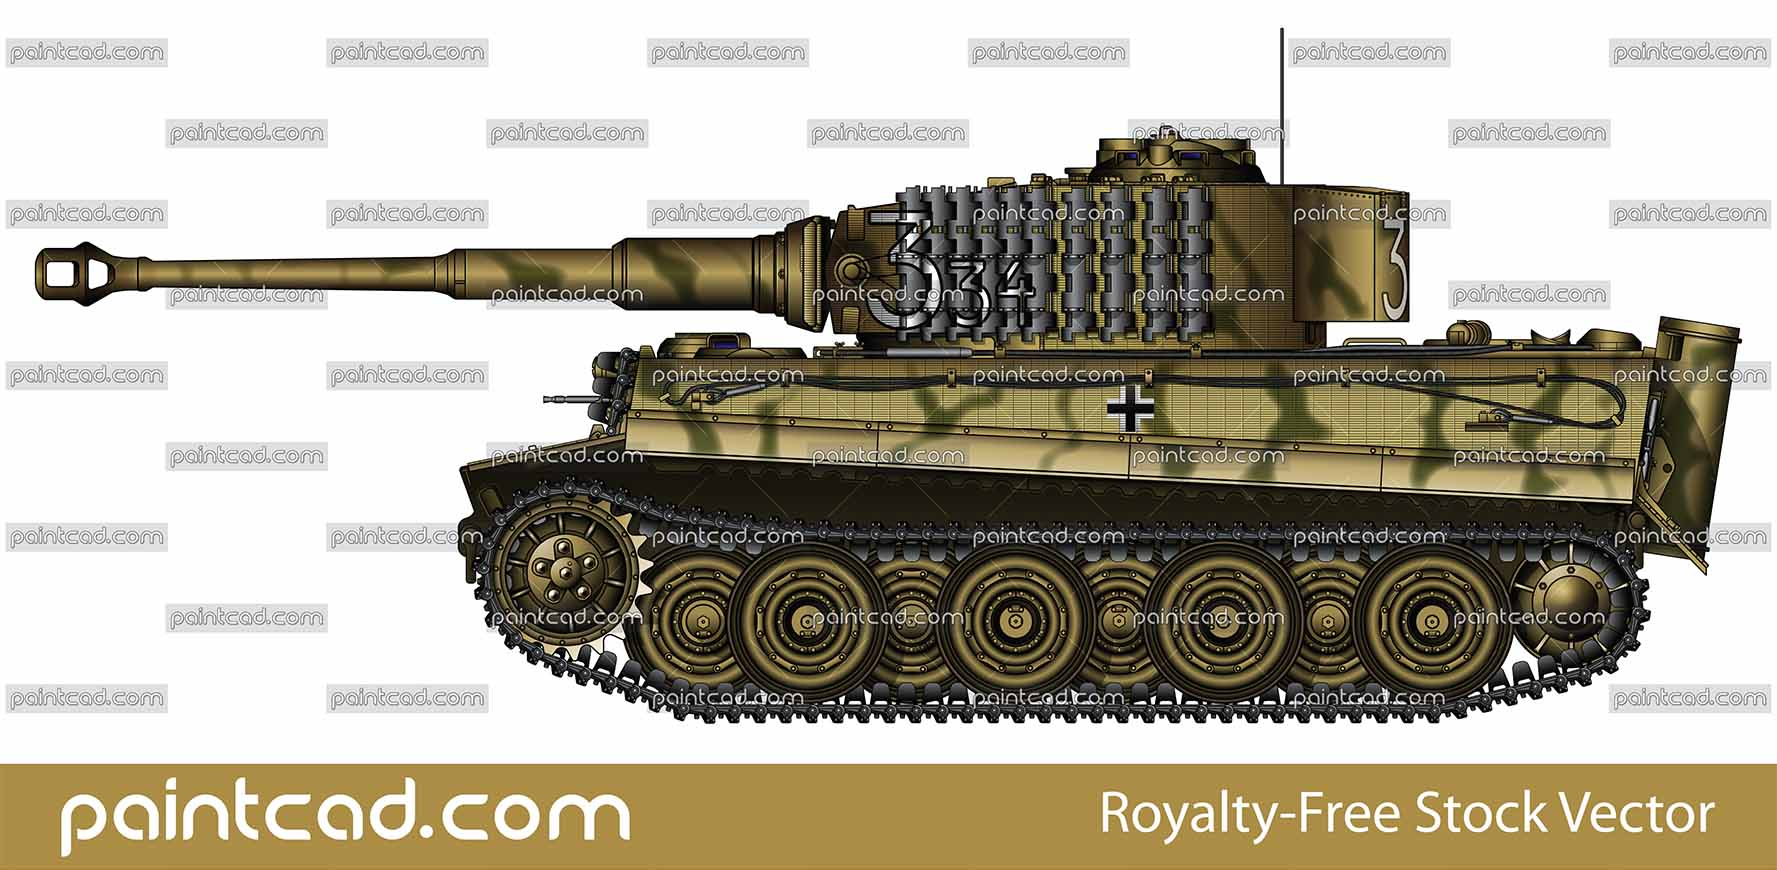 "Vector illustration with side view of heavy German tank Panzerkampfwagen  VI Tiger I late production from 507-th Heavy Panzer Battalion, used in World War II, fighiting in Poland around Zambrow, late summer 1944. On turret is painted a tactical number ""334"" with black lined white nummerals. First large ""3"" means Kompanie number, followed by smaller interior digits ""34"" for the Zug and individual tank number. This family panzers has a additional link tracks for armour on front and side of machine. Armored fighting vehicle with zimmerit cover used against magnetically attached anti-tank mines. Realistic color drawing with many details. Isolated object over white background."